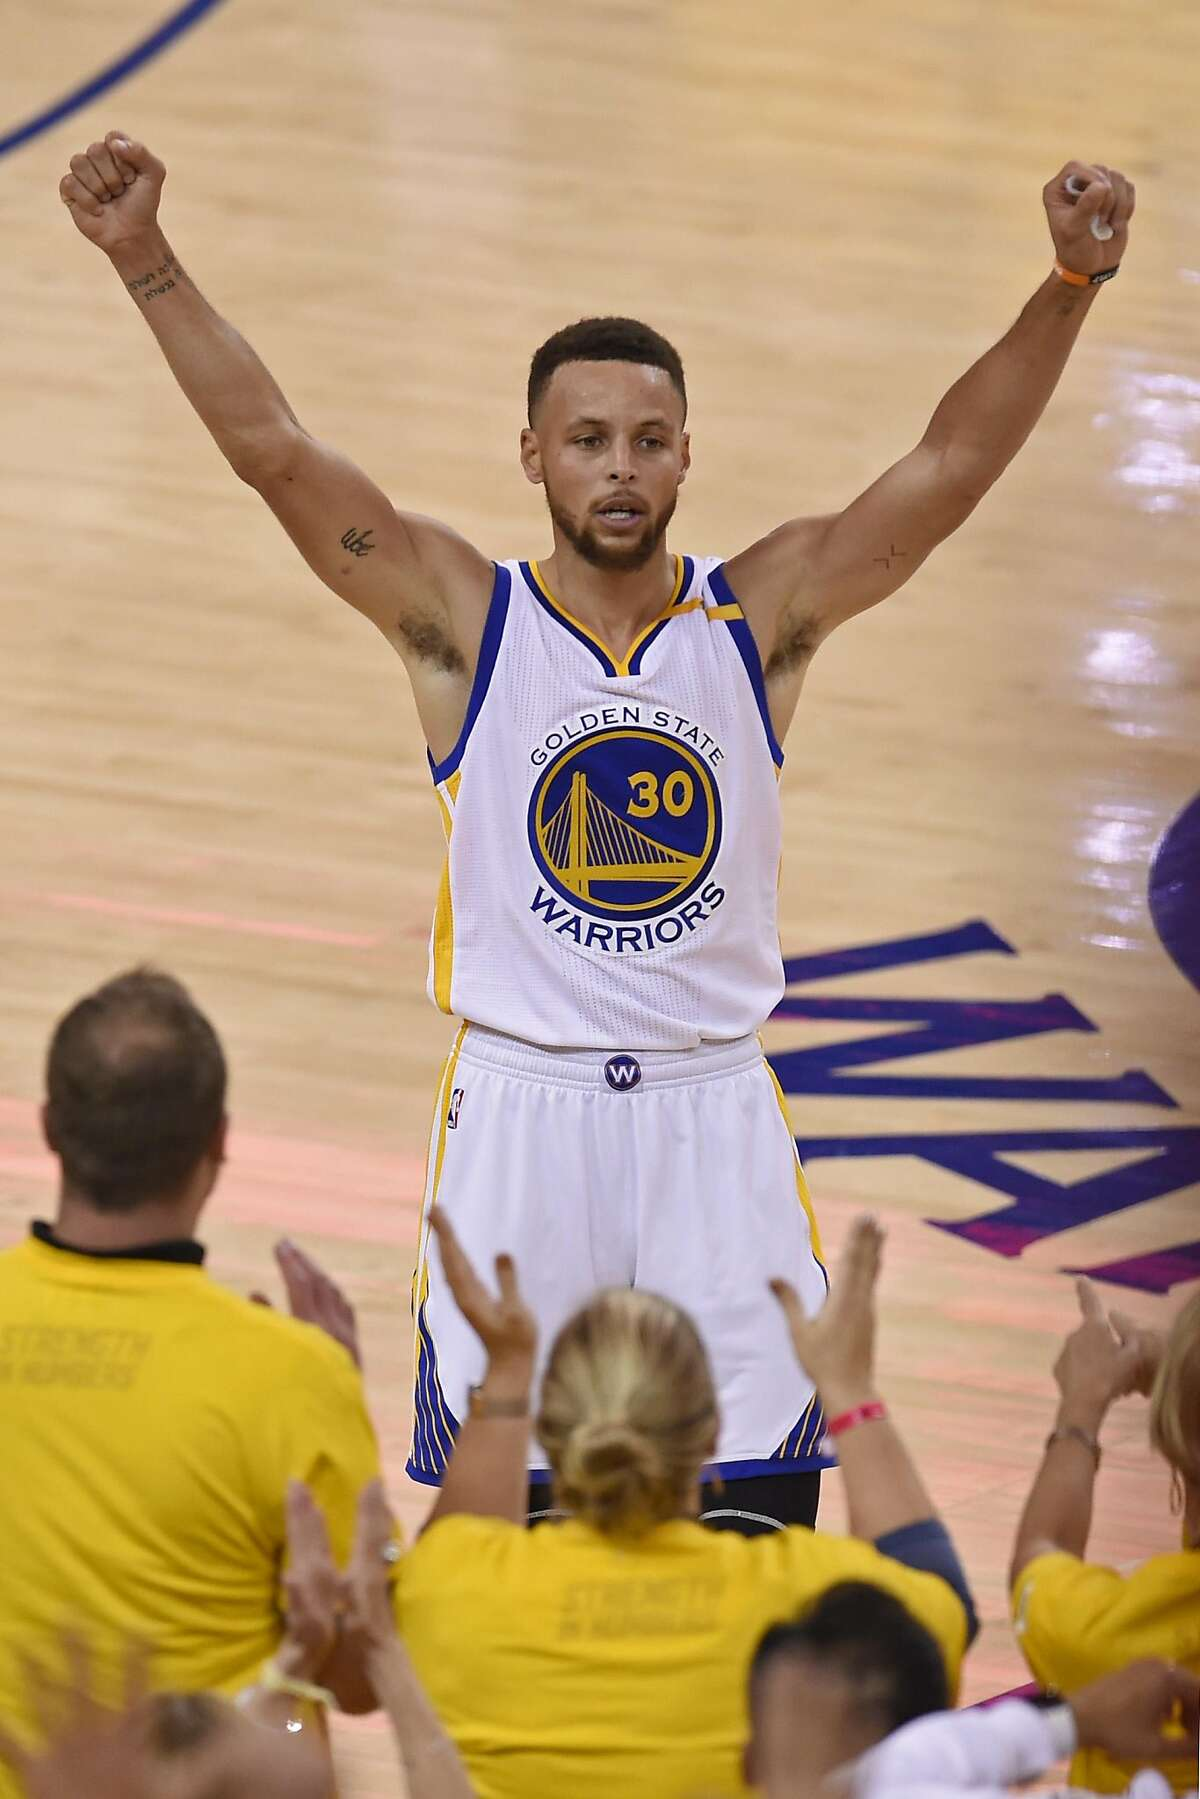 The Golden State Warriors' Stephen Curry celebrates after defeating the Cleveland Cavaliers, 129-120, in Game 5 of the NBA Finals at Oracle Arena in Oakland, Calif., on Monday, June 12, 2017. (Jose Carlos Fajardo/Bay Area News Group/TNS)